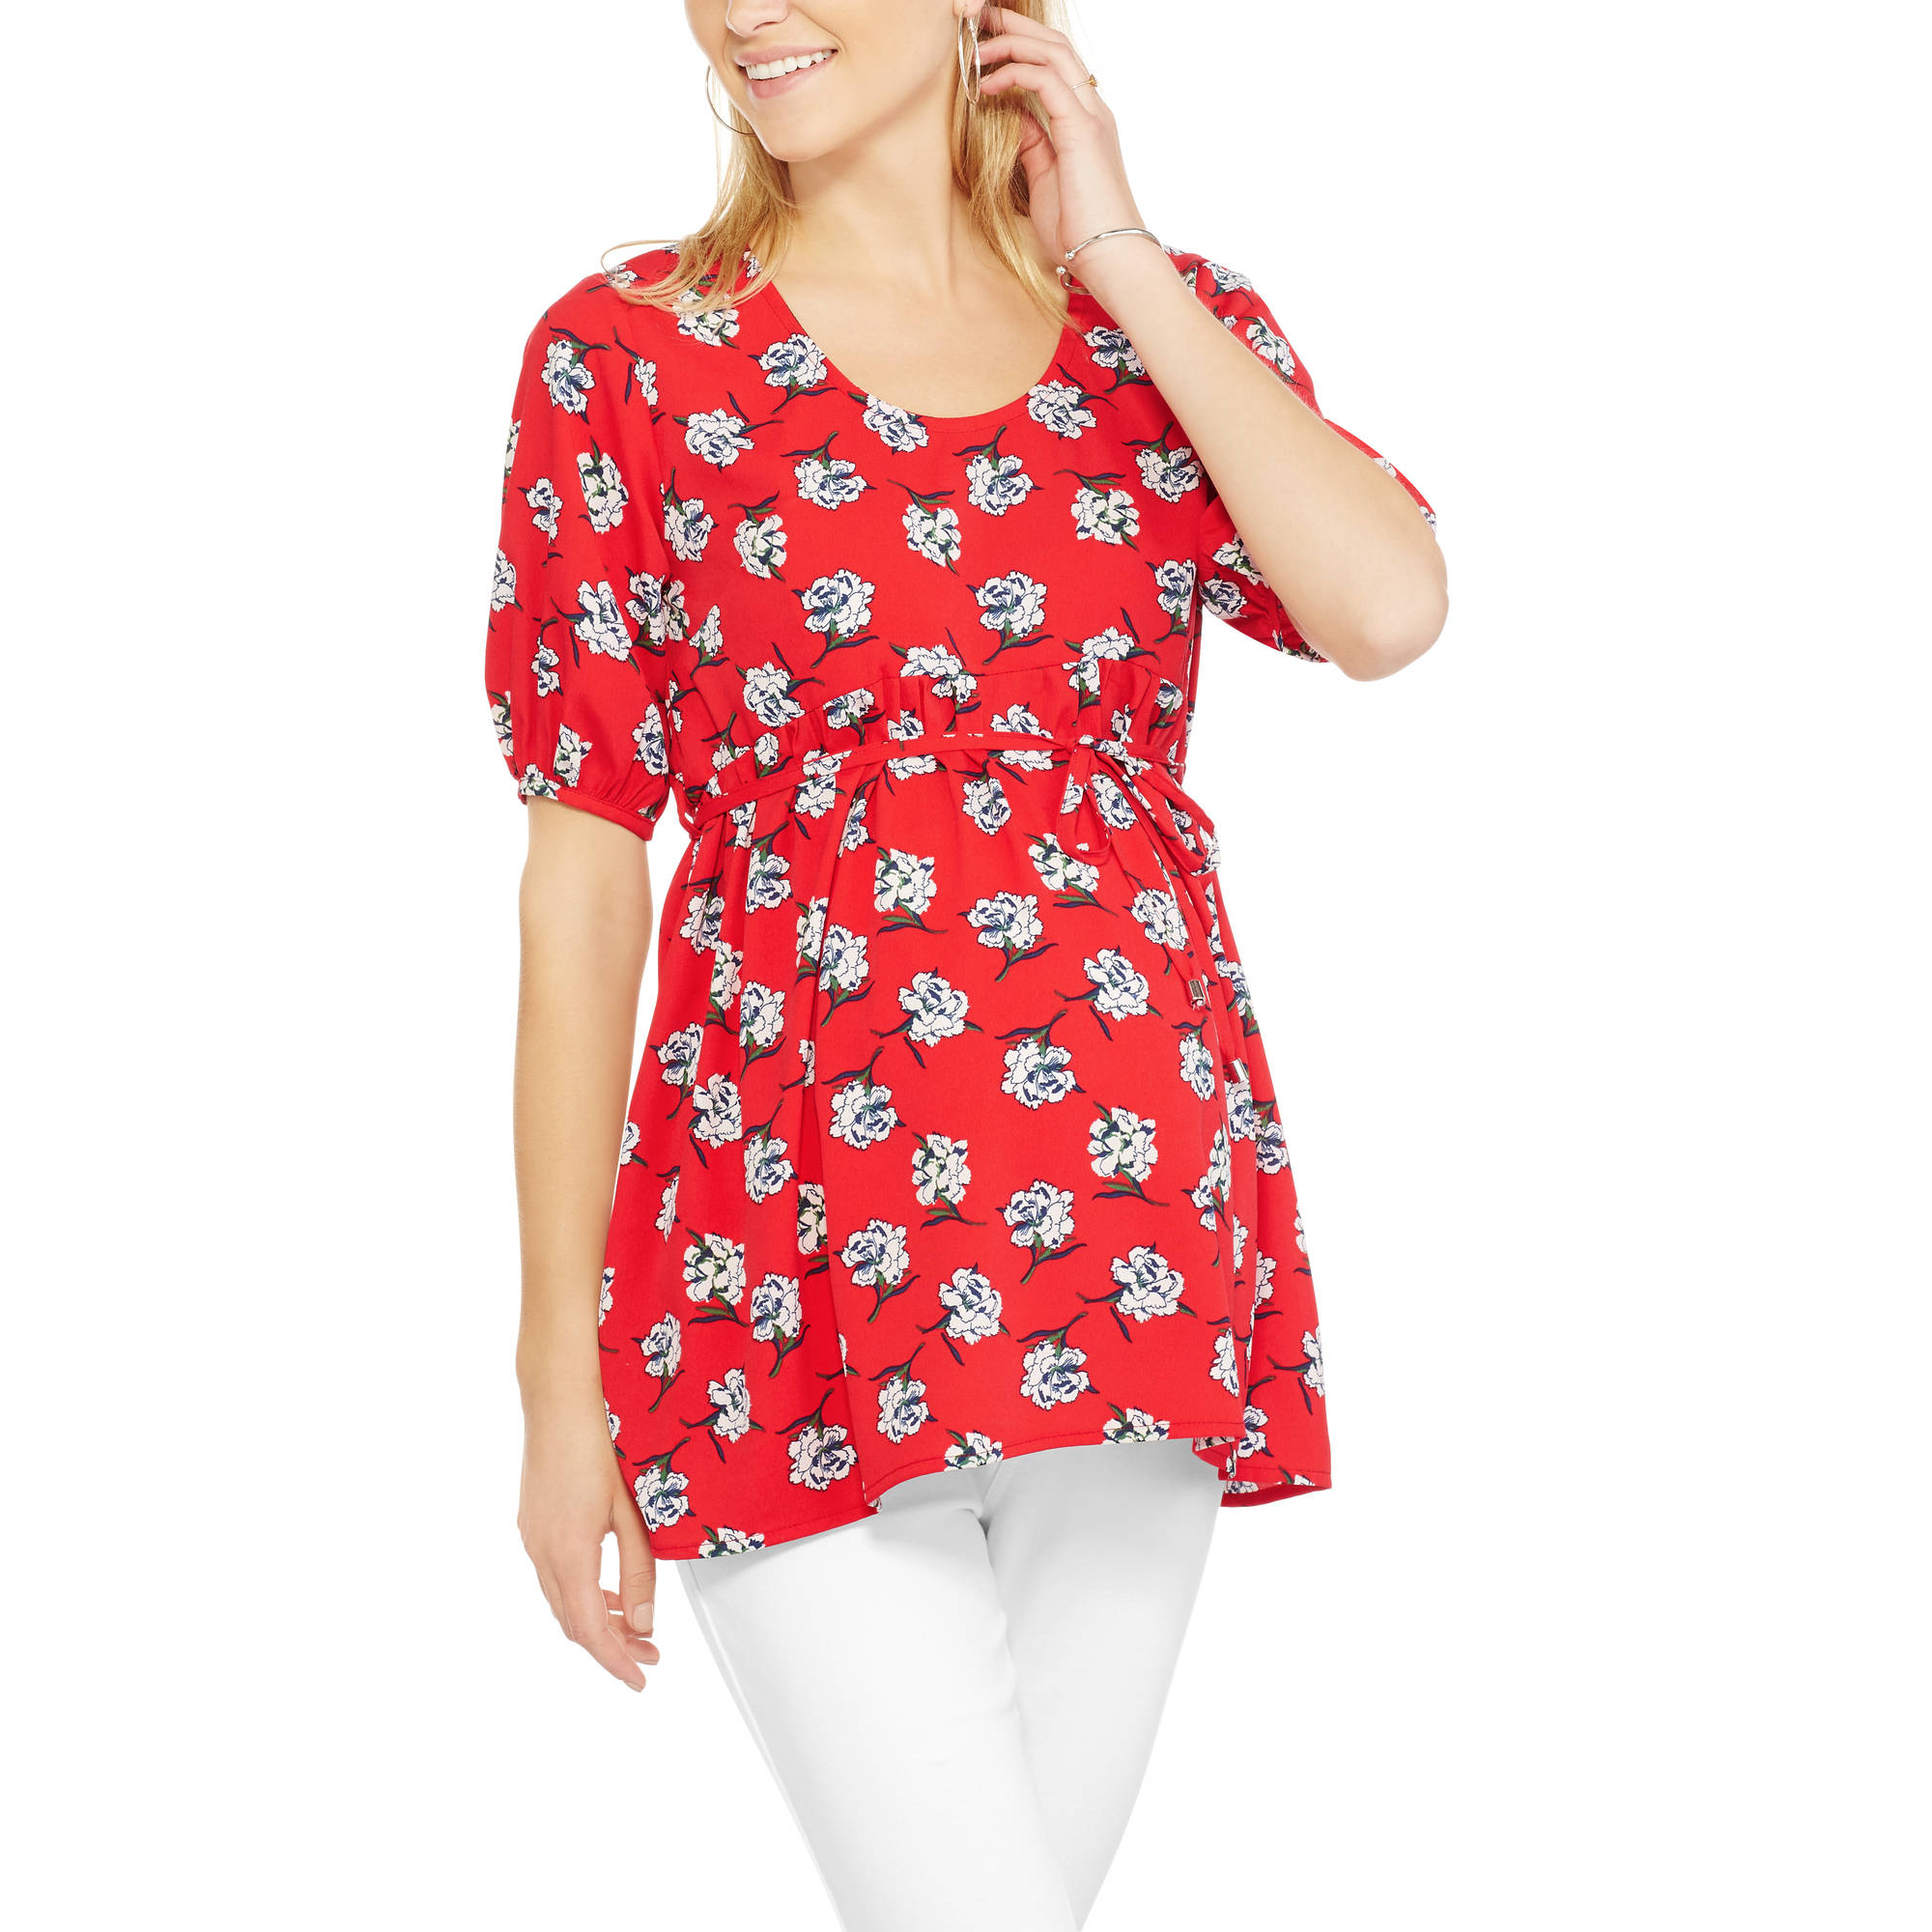 Oh Mamma Maternity Woven Elbow Sleeve Scoop Neck floral Print Top